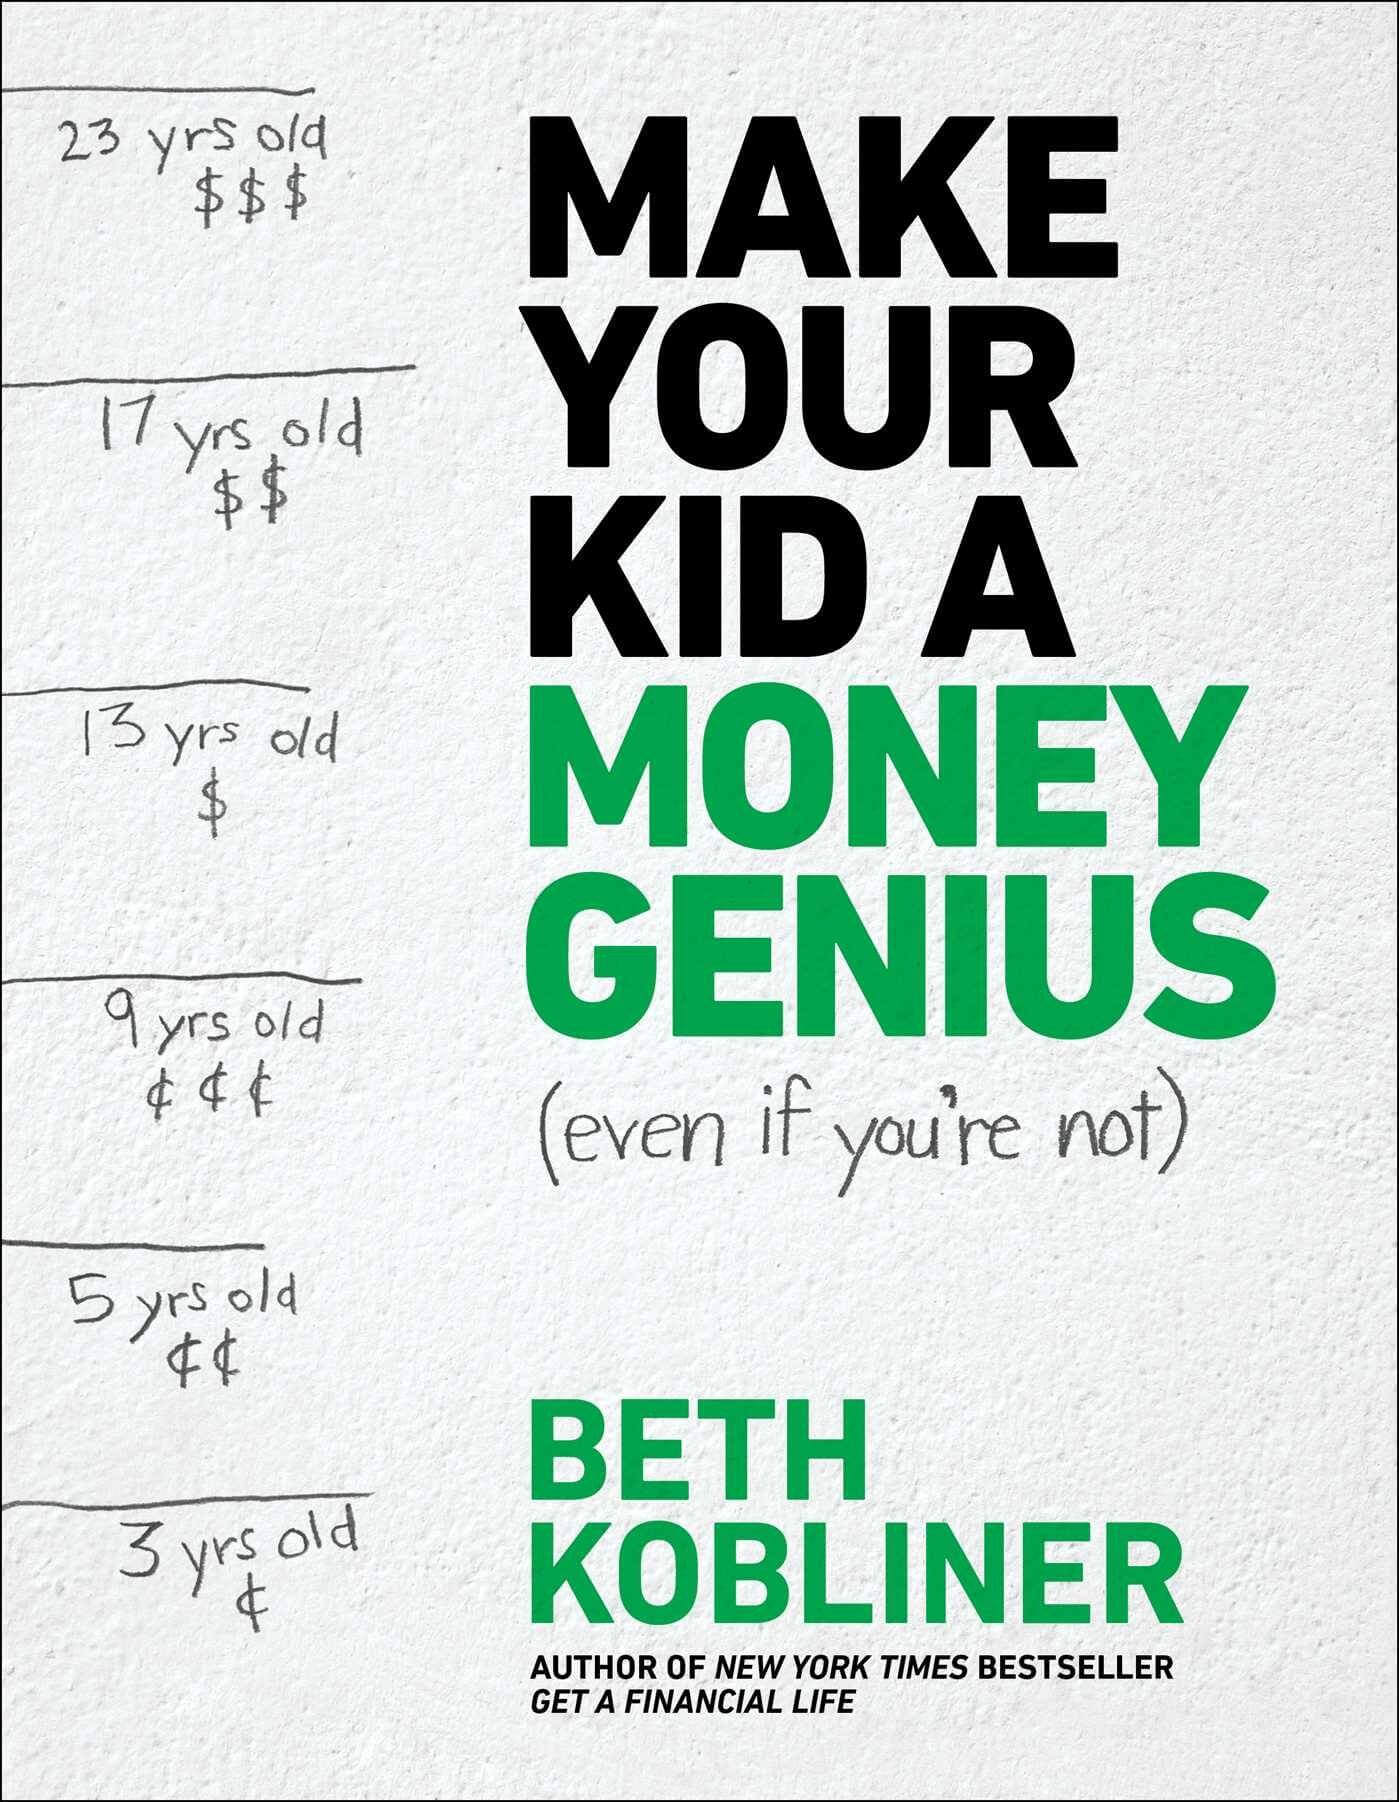 A Brilliant Shopping Game That Will Make Your Kid a Money Genius!